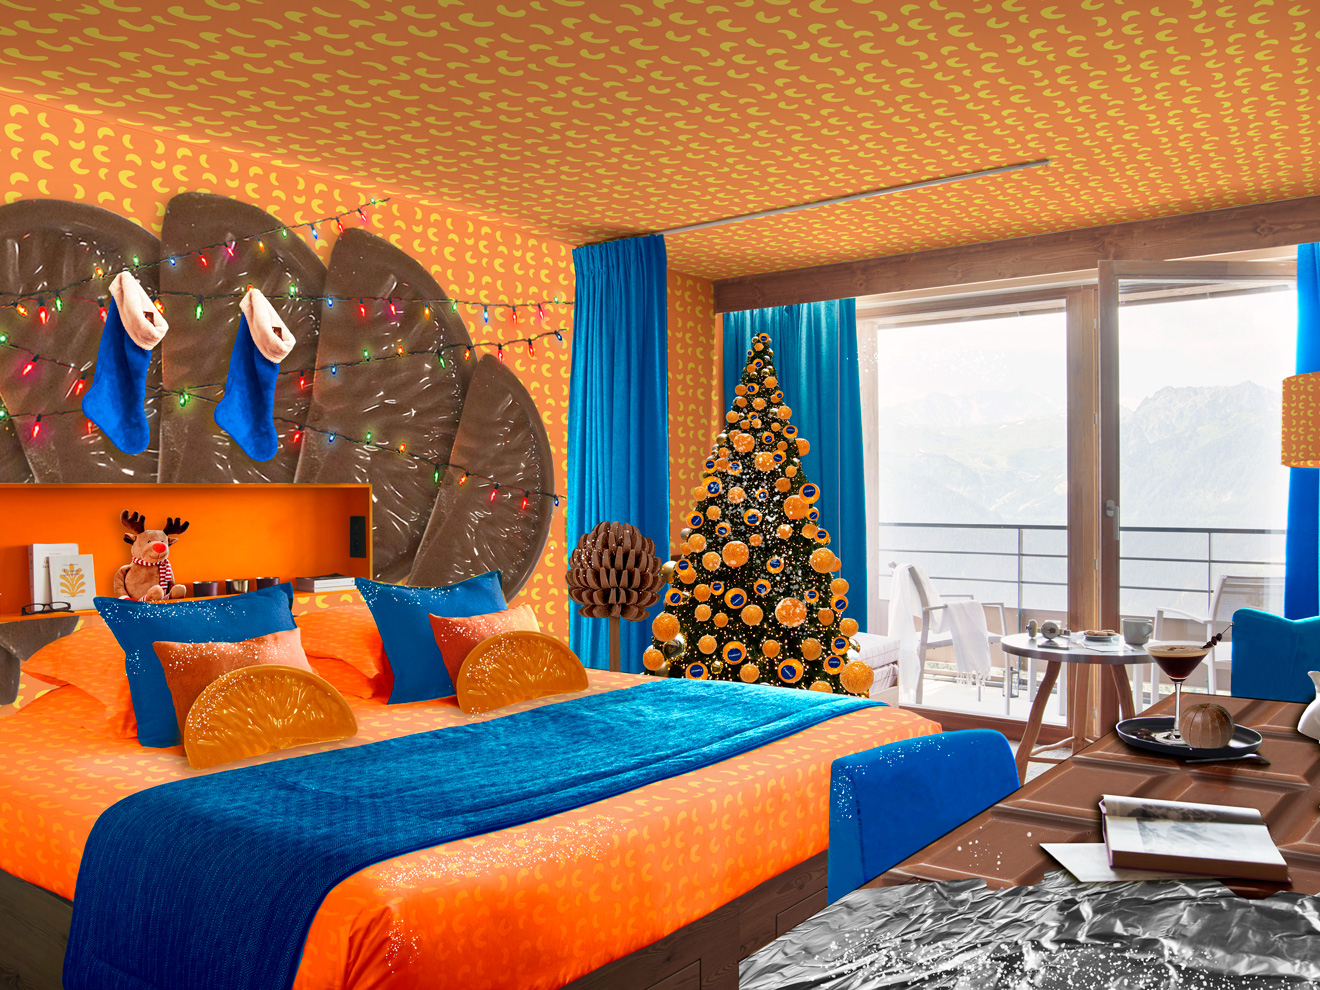 A chocolate orange-themed hotel room is opening at this French ski resort